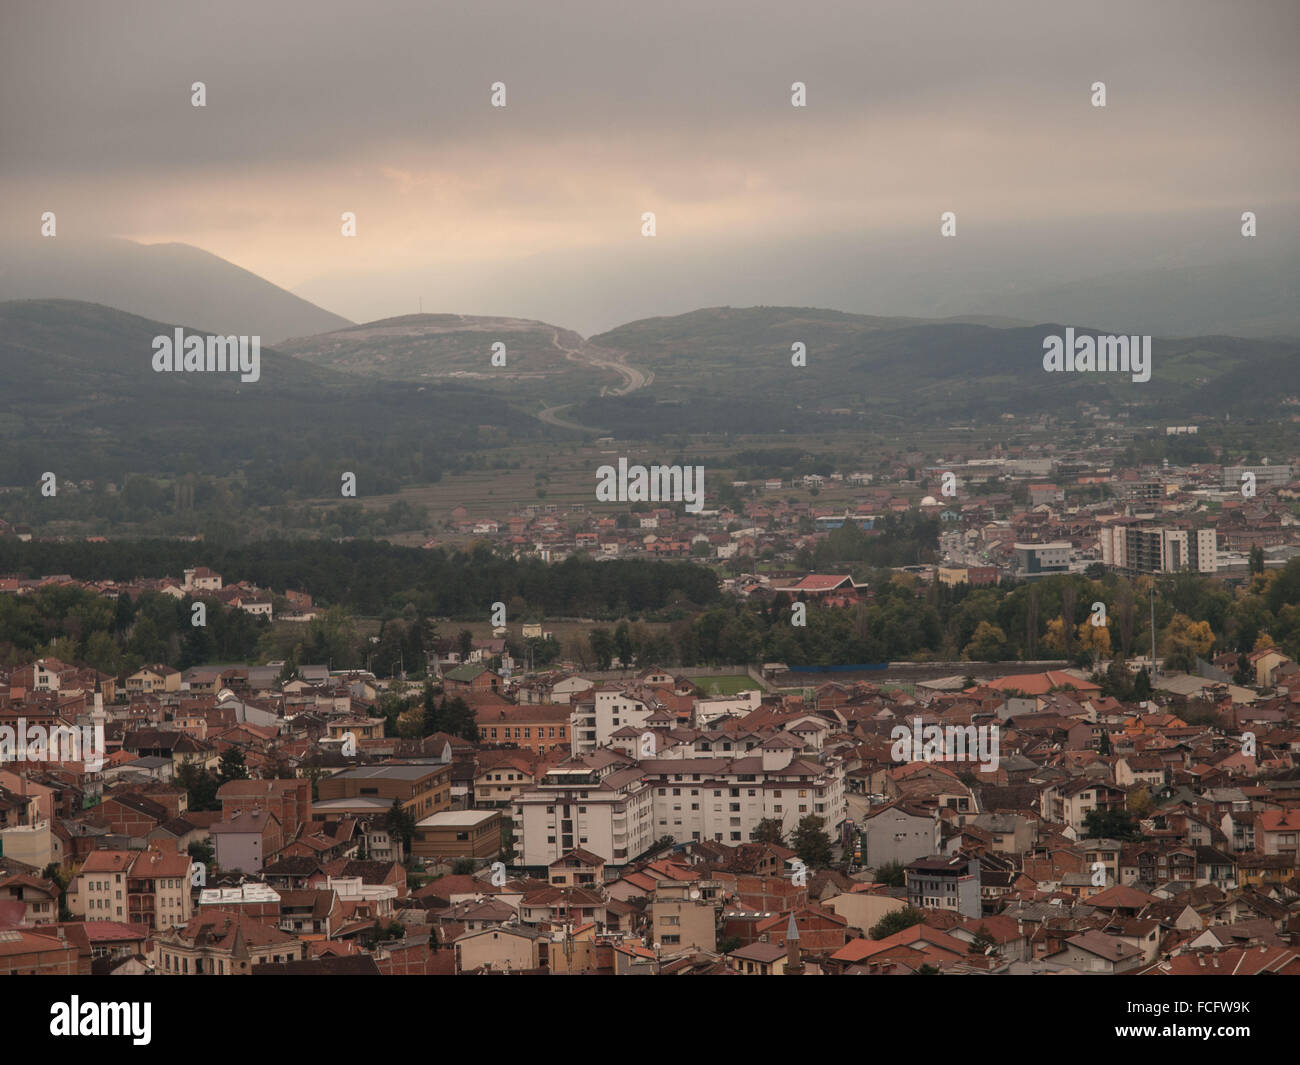 Aerial view of Prizren, Kosovo, Europe at sunset. - Stock Image